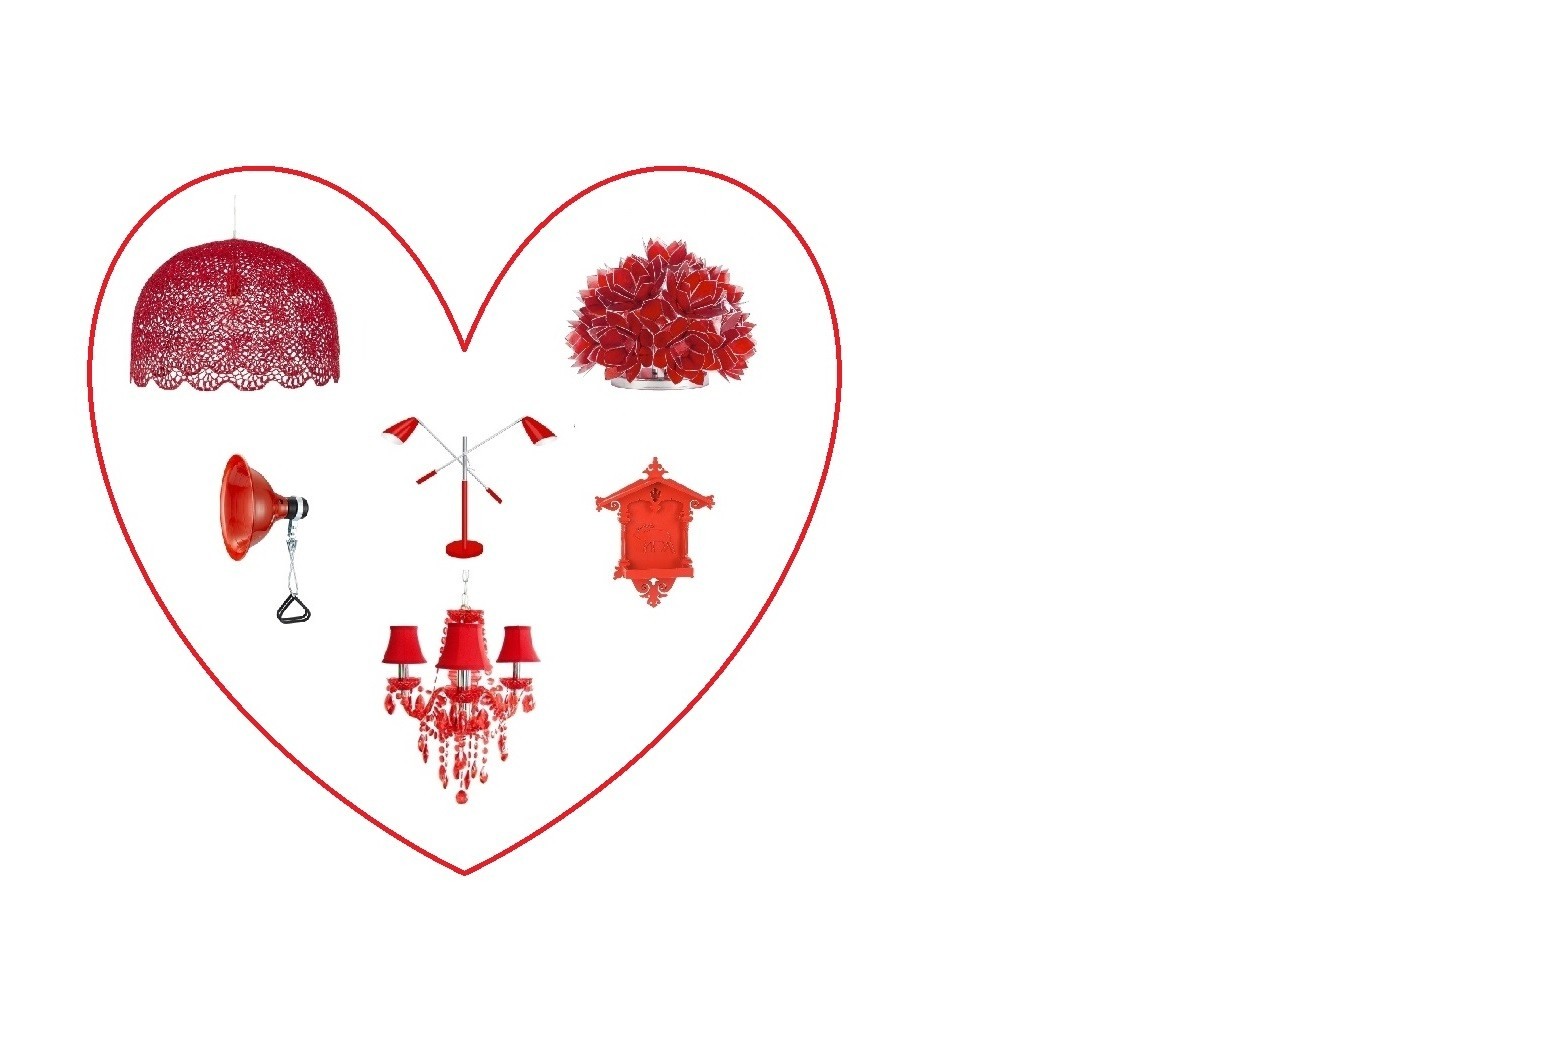 Go for a radiant Valentine. Buy the perfect gift. Show your love. Illuminate!